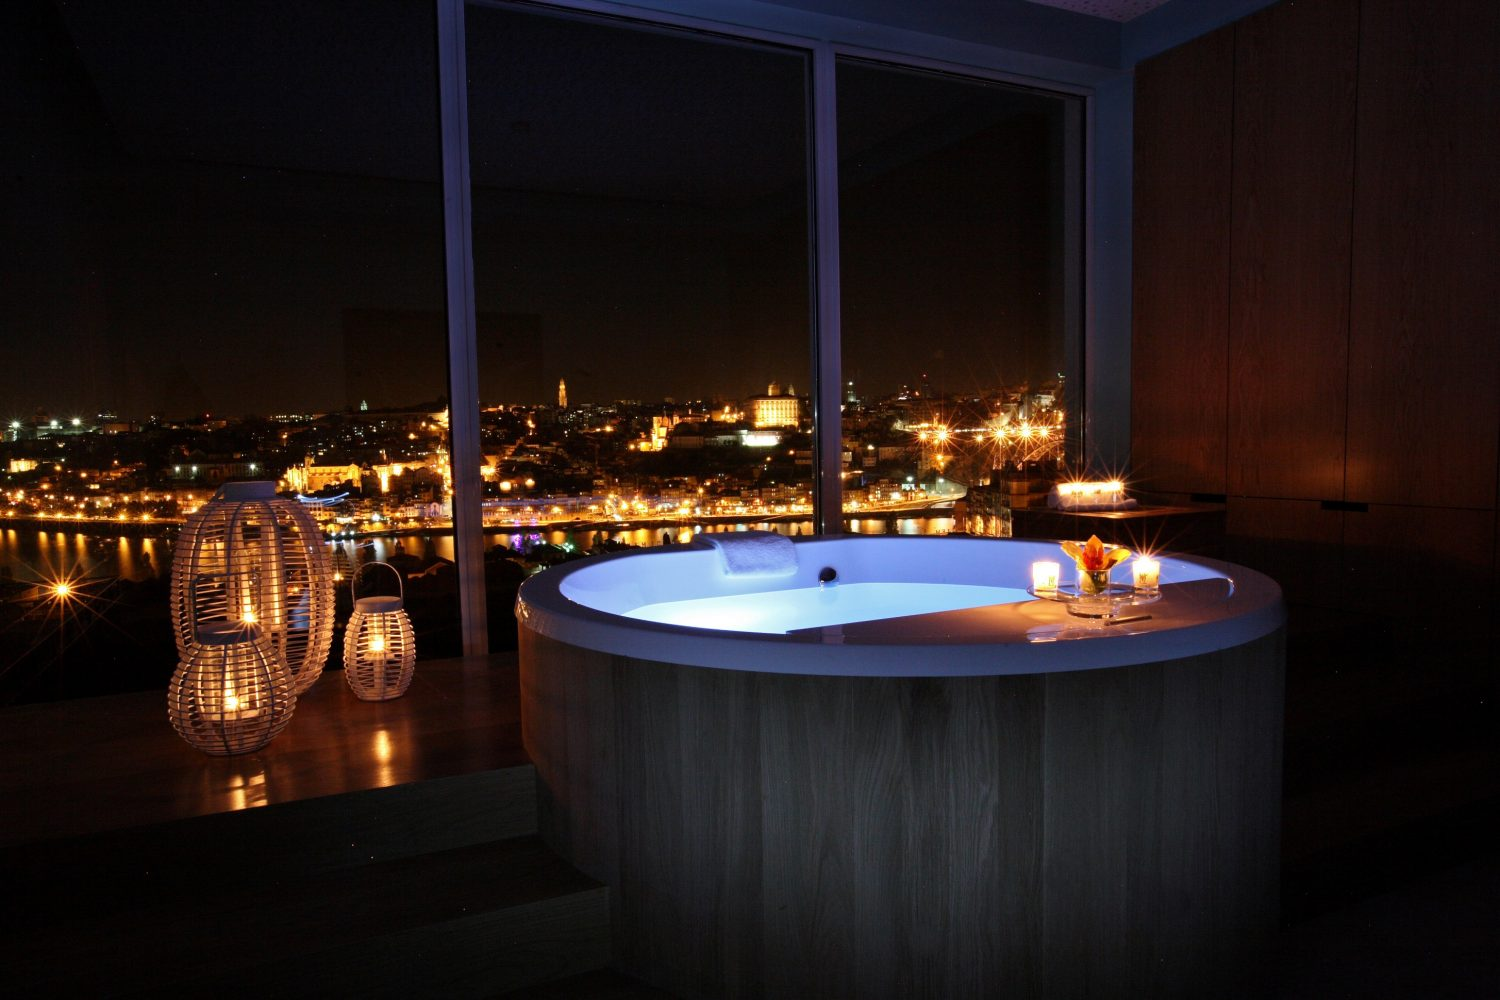 Spa Barrell Bath at night at Yeatman Relais & Chateaux